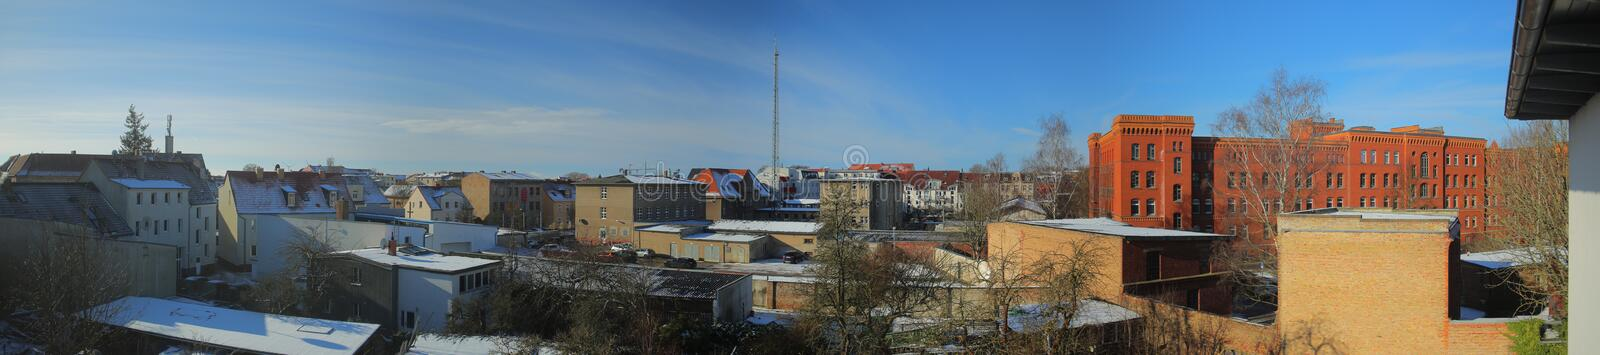 View over southern part of the city of Greifswald, Germany.  royalty free stock photo